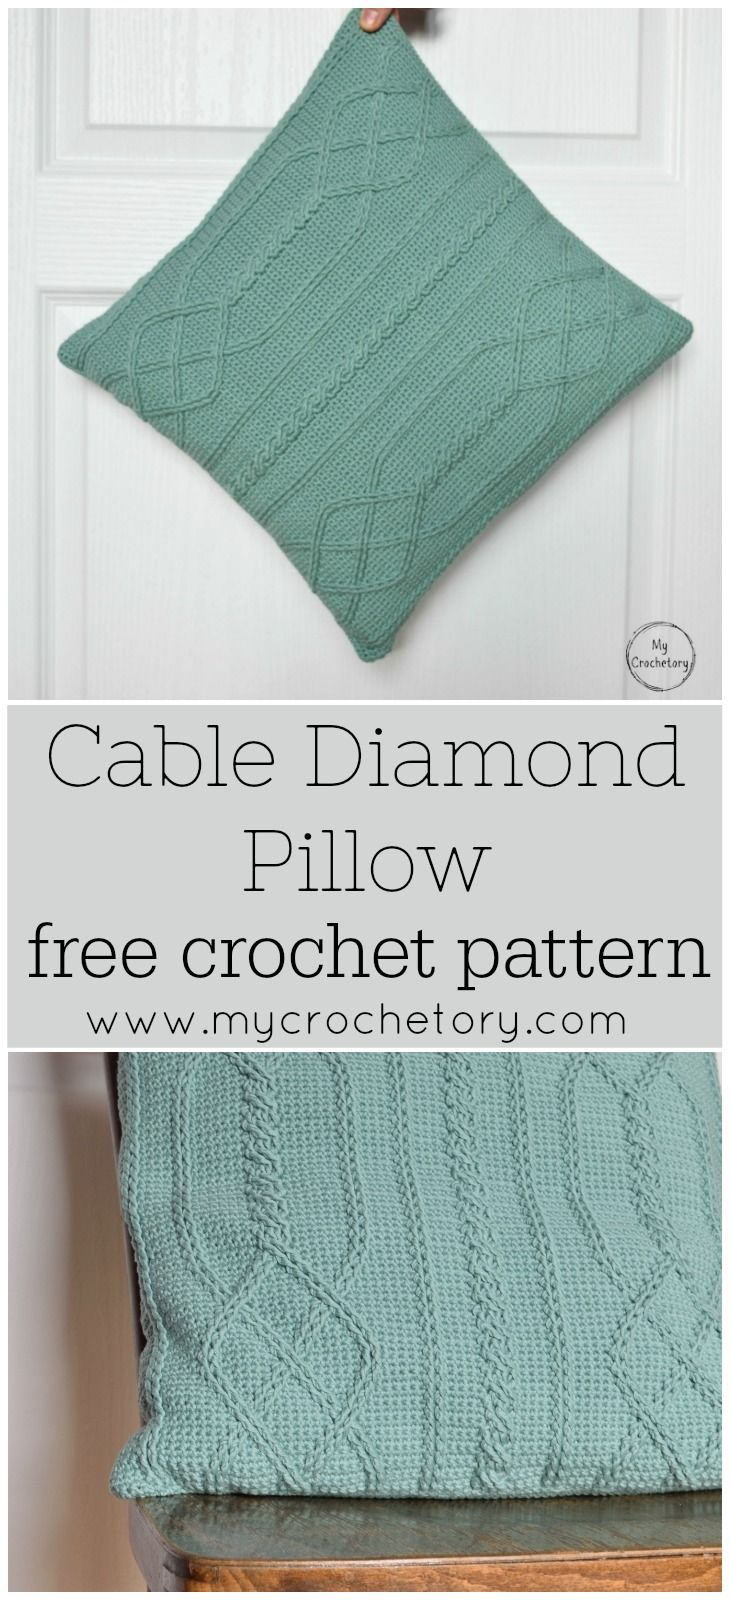 Cable Diamond Pillow - free crochet pattern by | Pinterest | Tejido ...